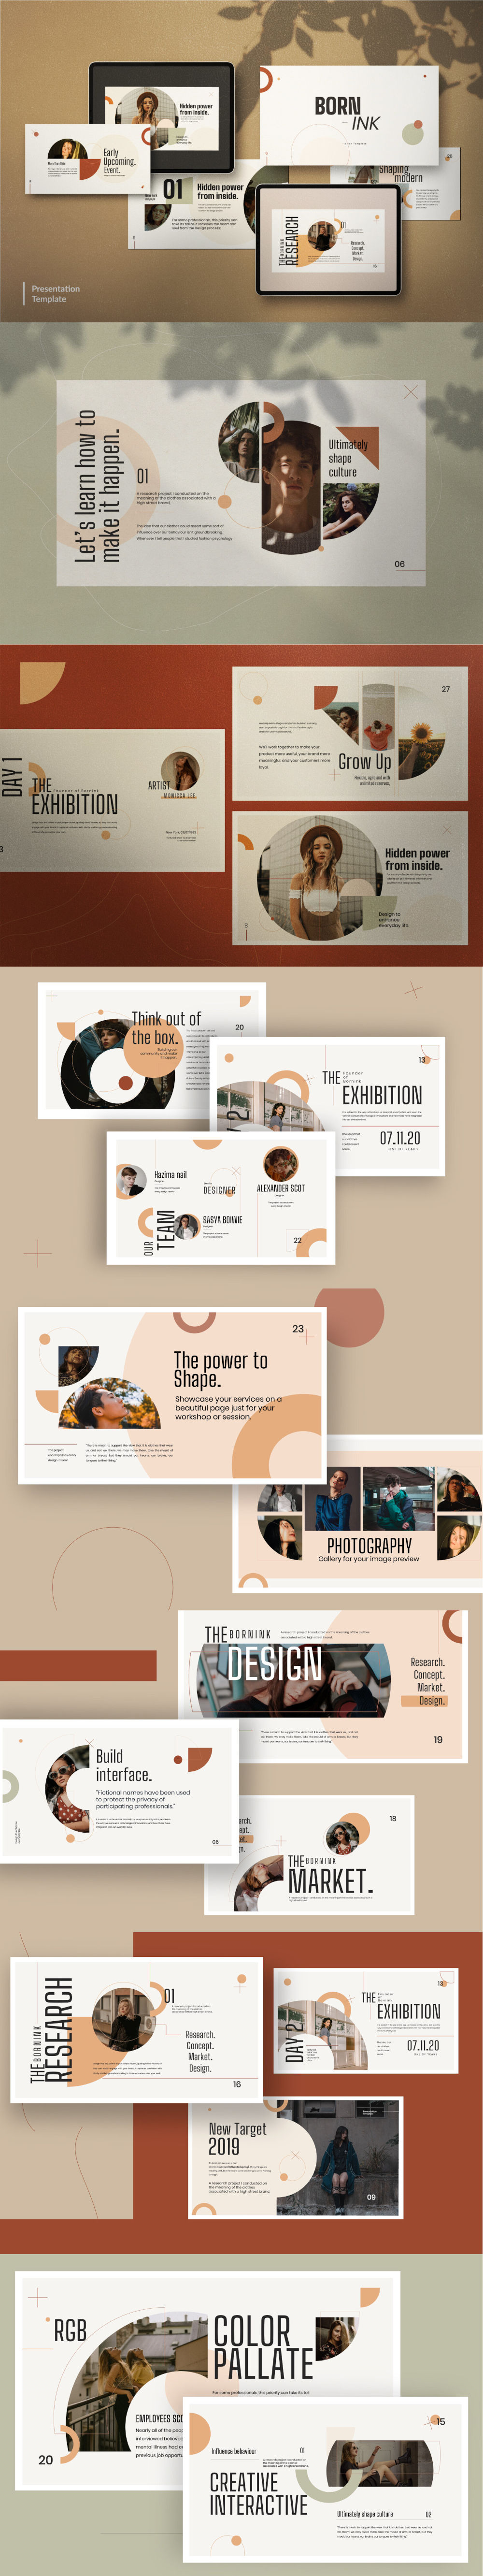 Born Ink Free Presentation Template preview